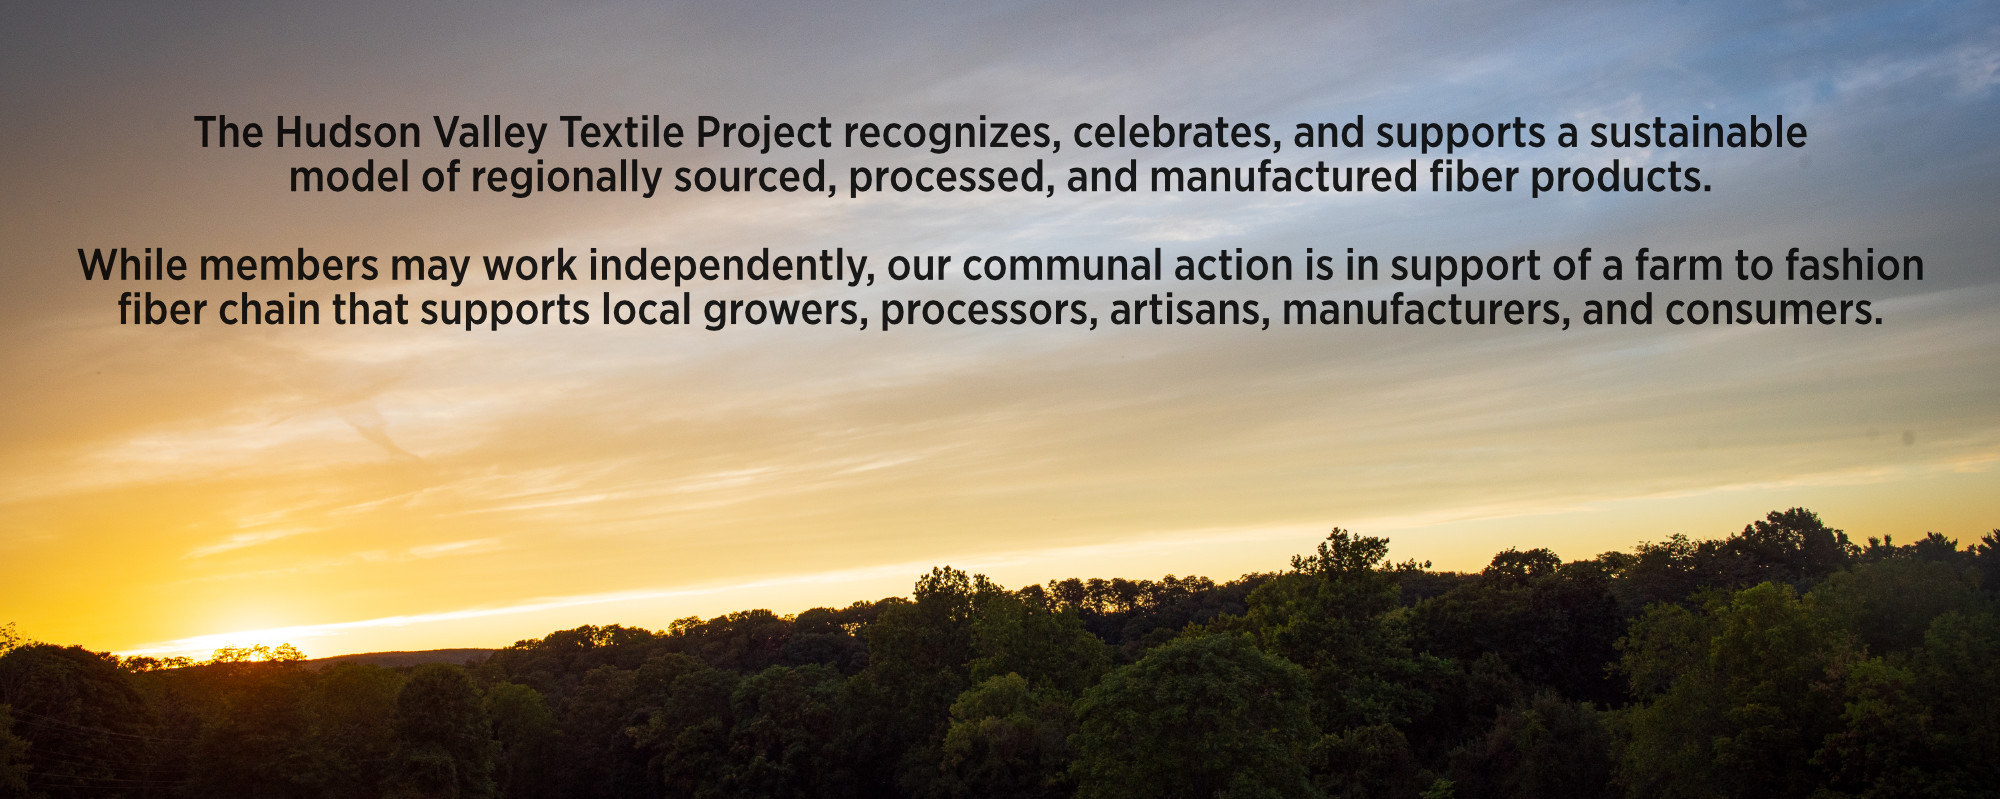 HVTP Mission Statement